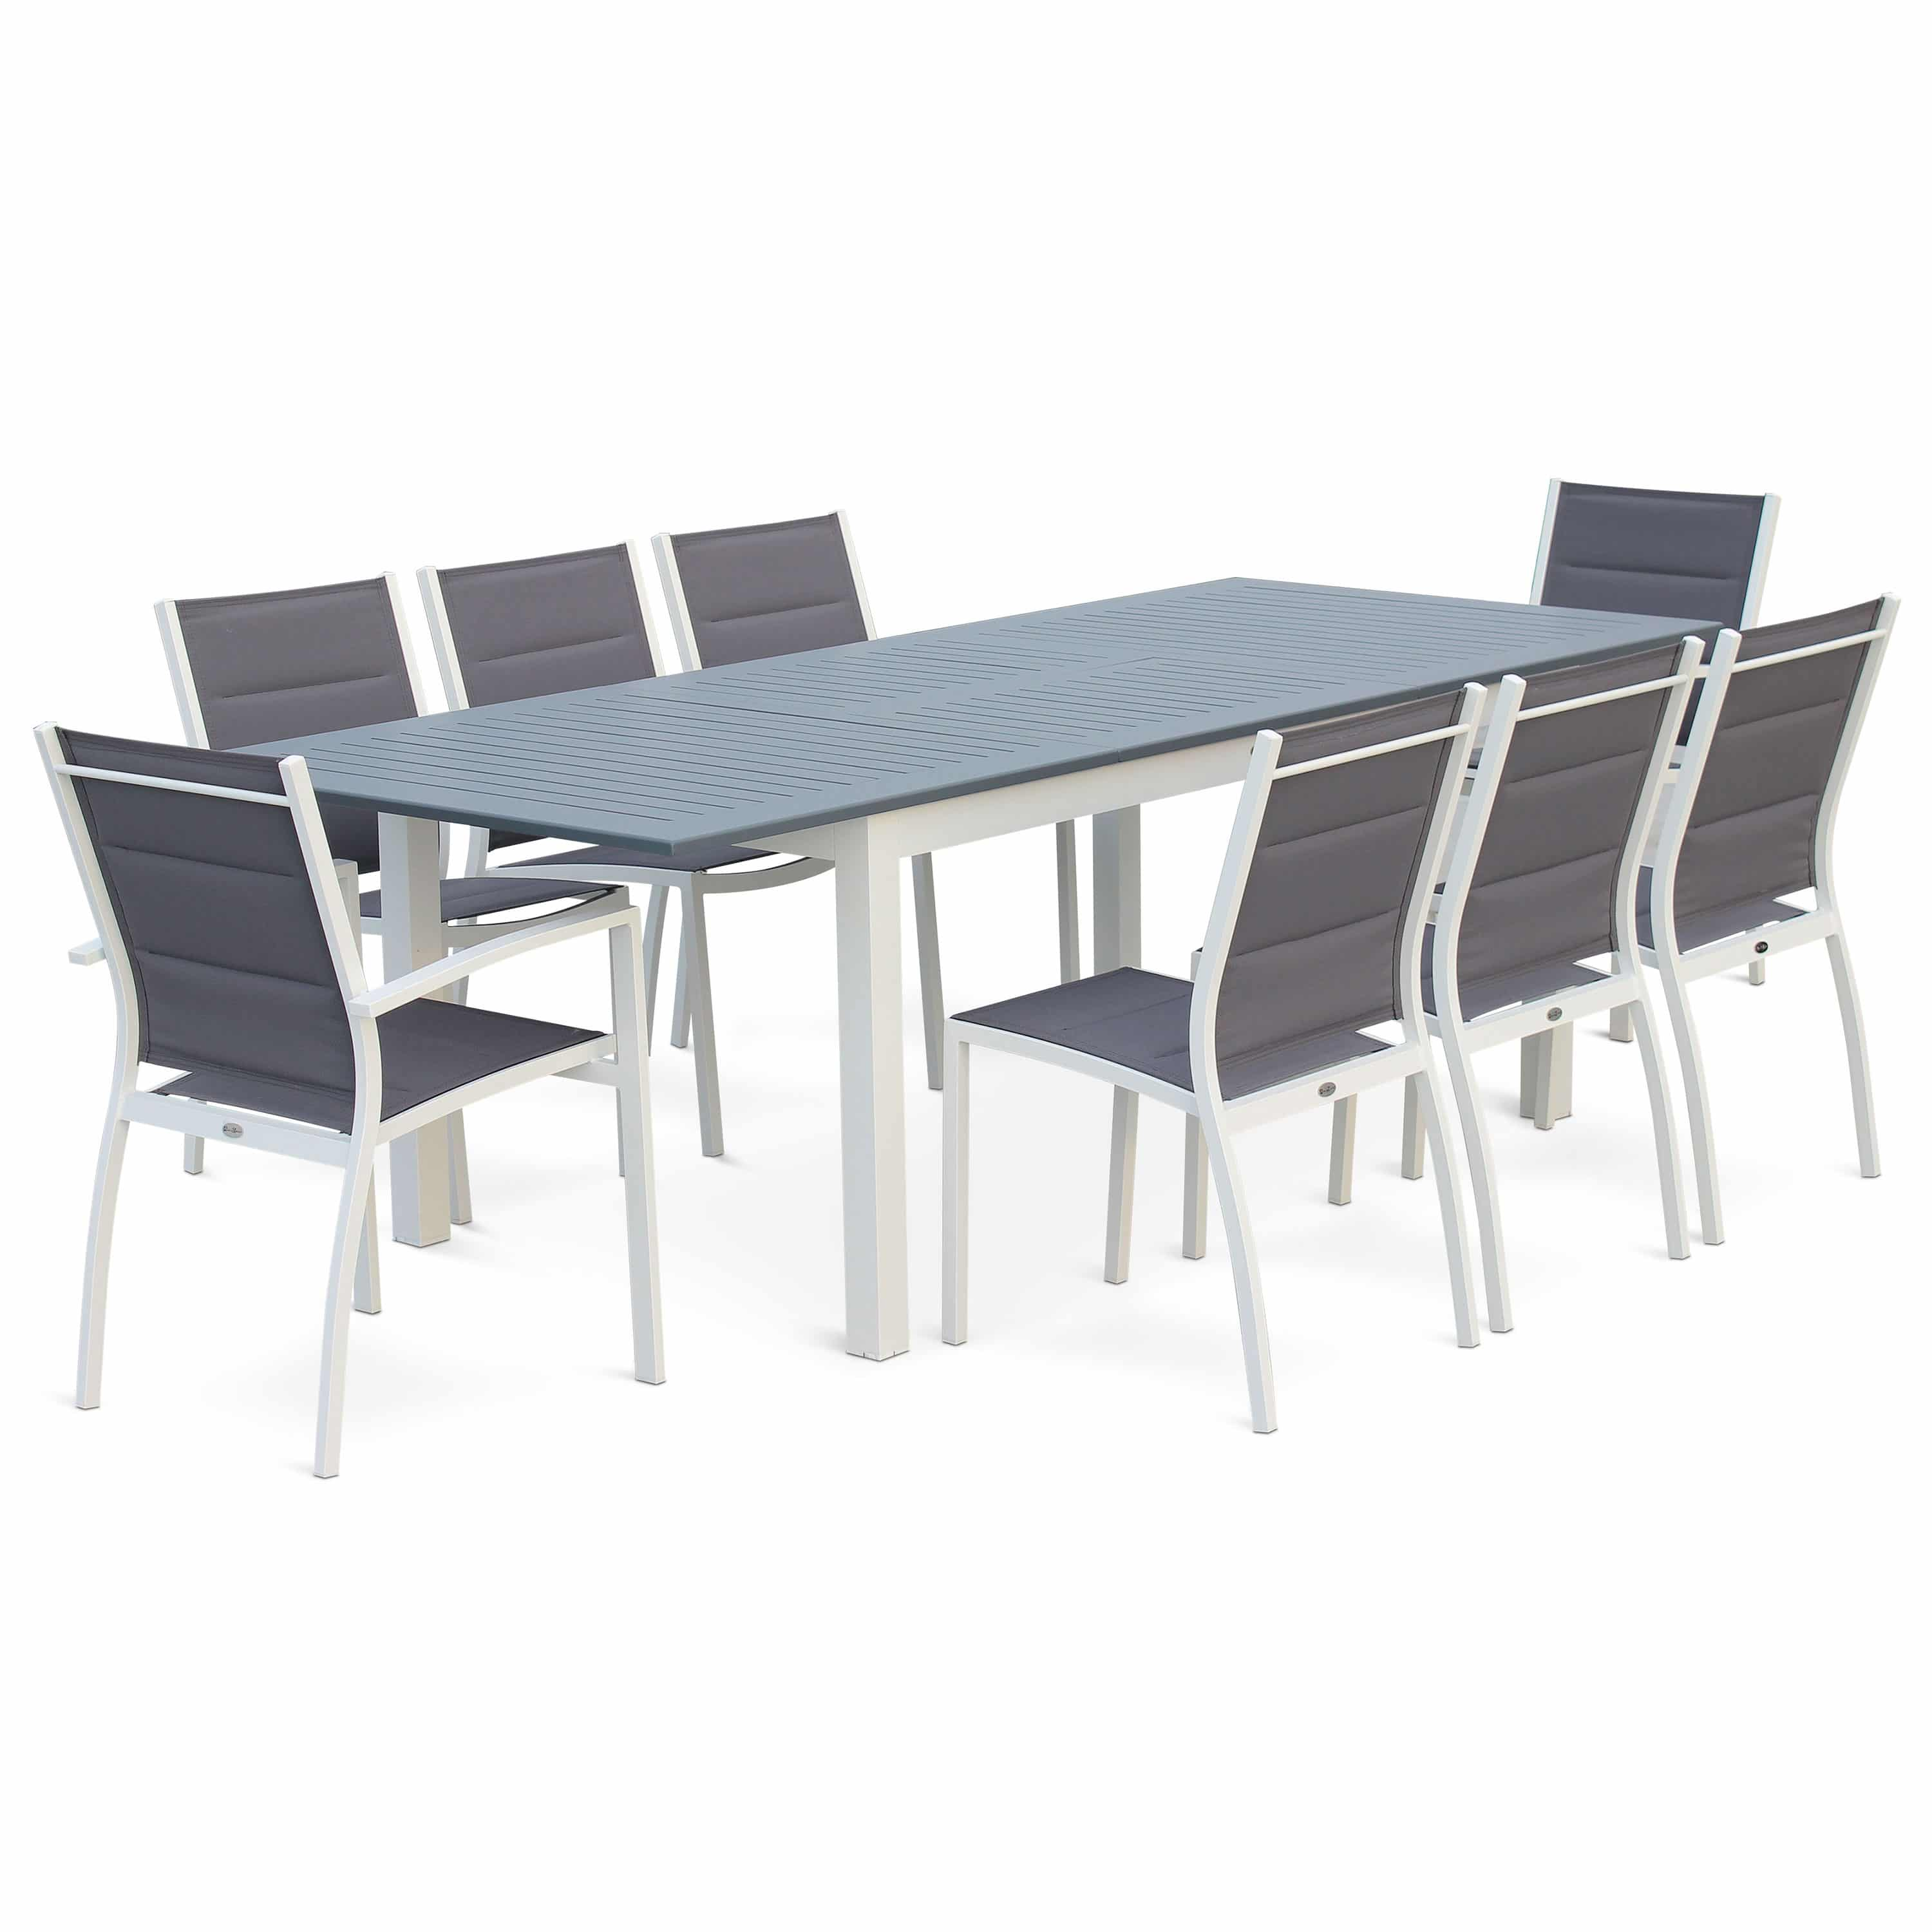 Salon De Jardin Chicago Alice Garden 8 10 Seater 175 245cm Extending Aluminium Dining Set 4